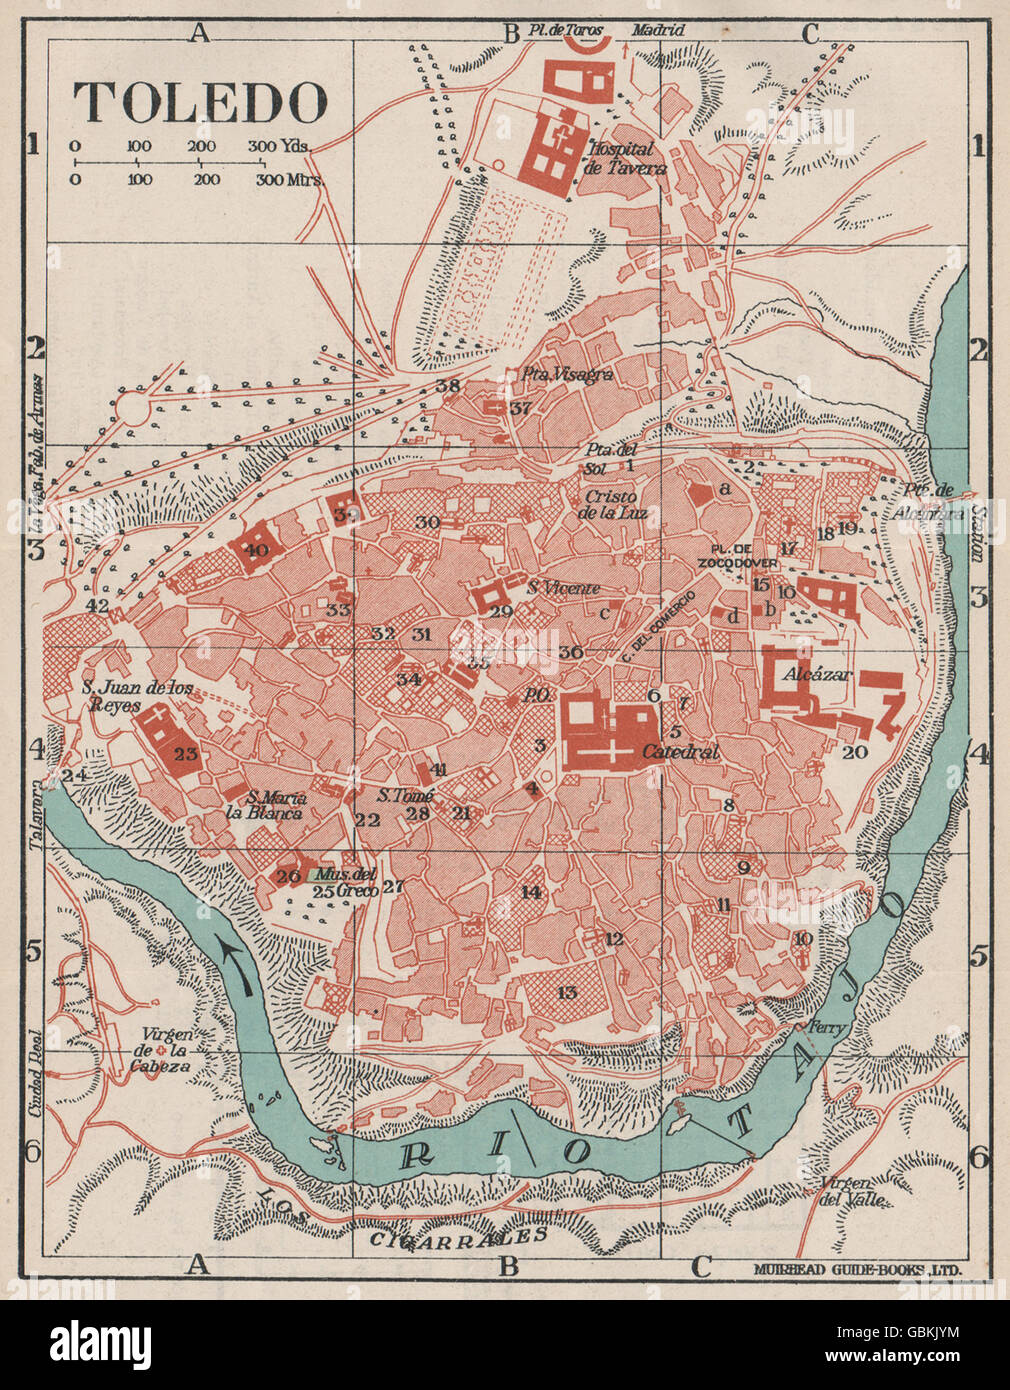 TOLEDO Vintage town city map plan Spain 1930 Stock Photo